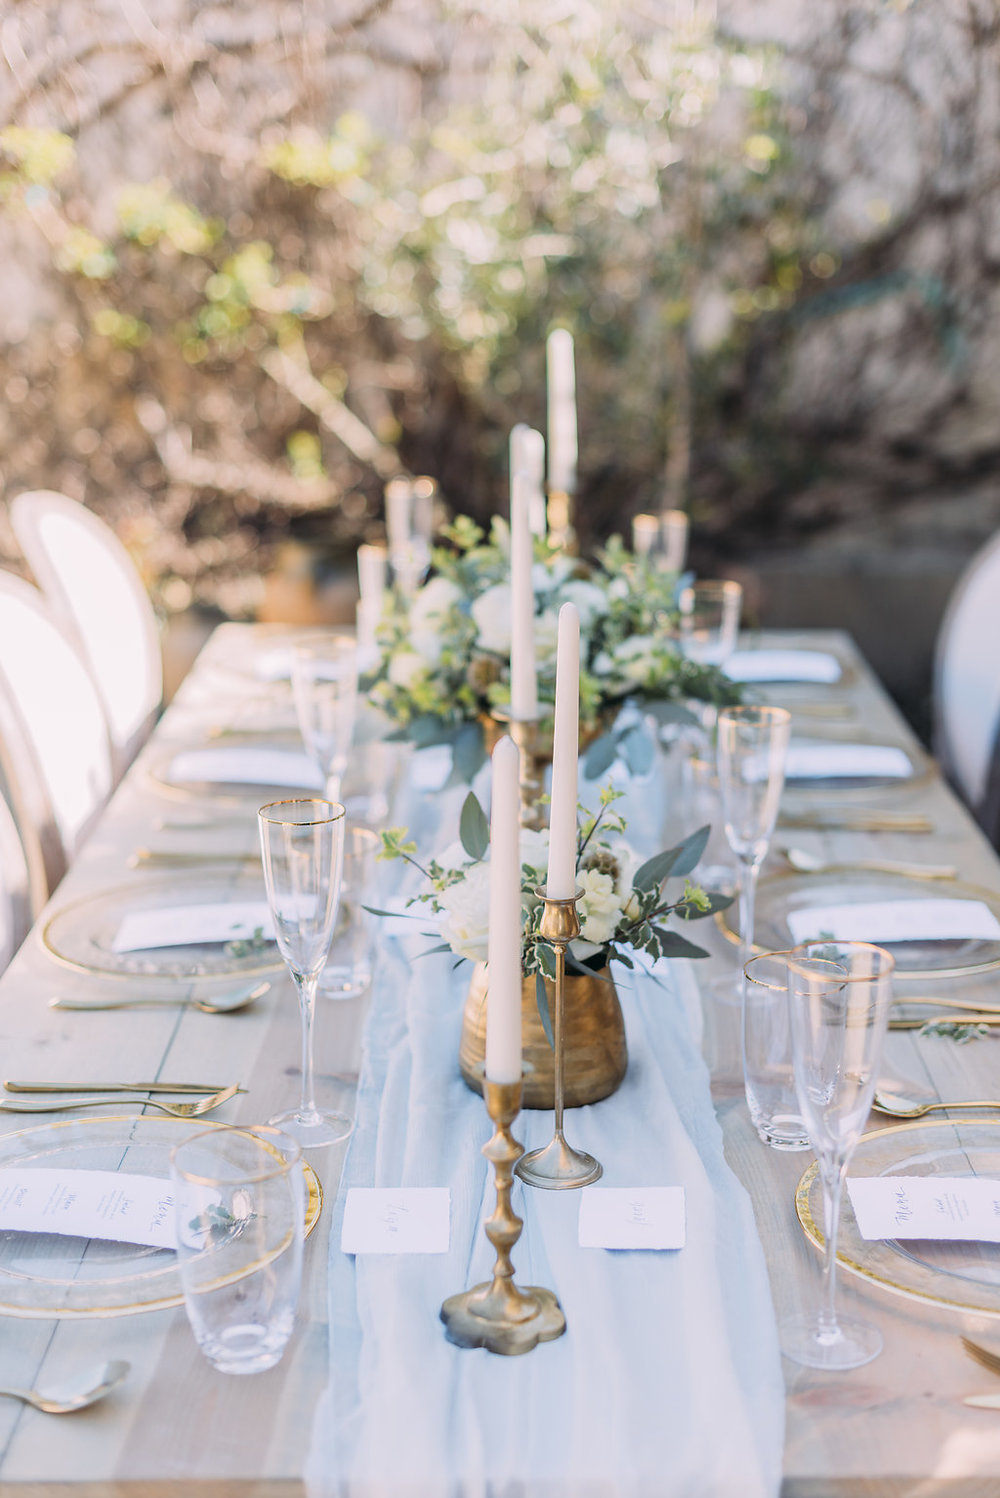 Sheer Silk Chiffon Table Runners for soft and sophisticated wedding tablescape